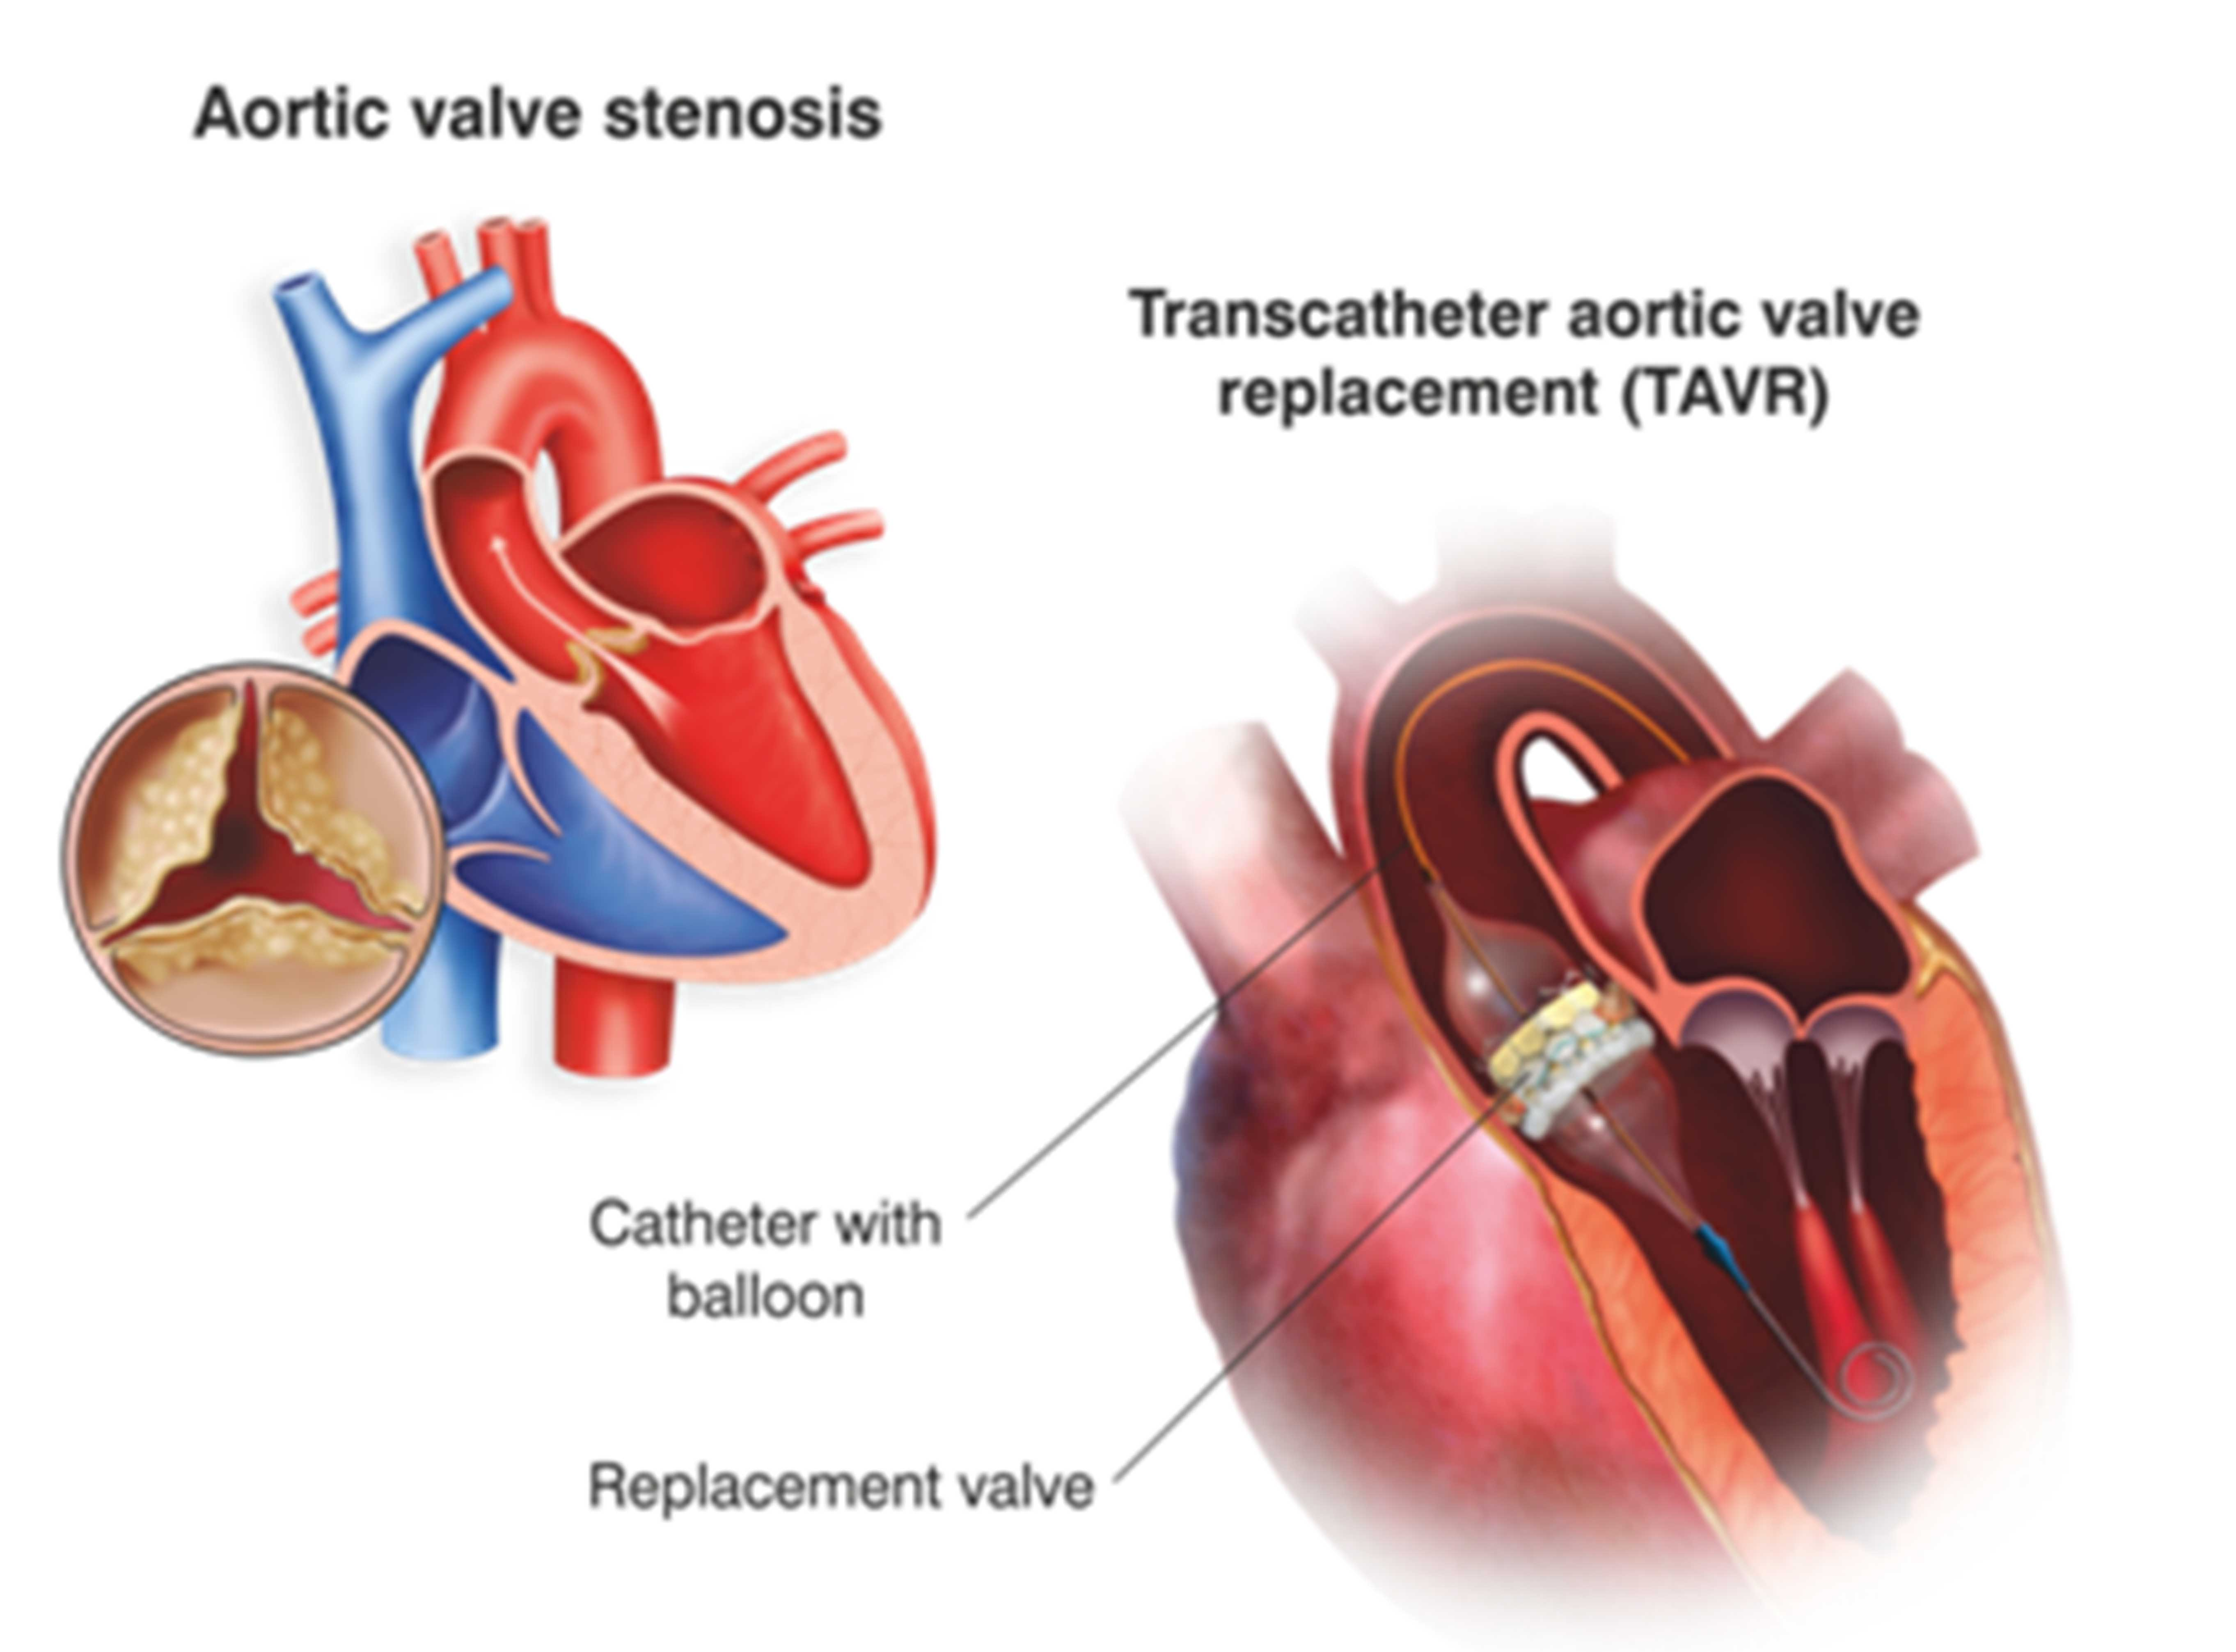 What is TAVR?